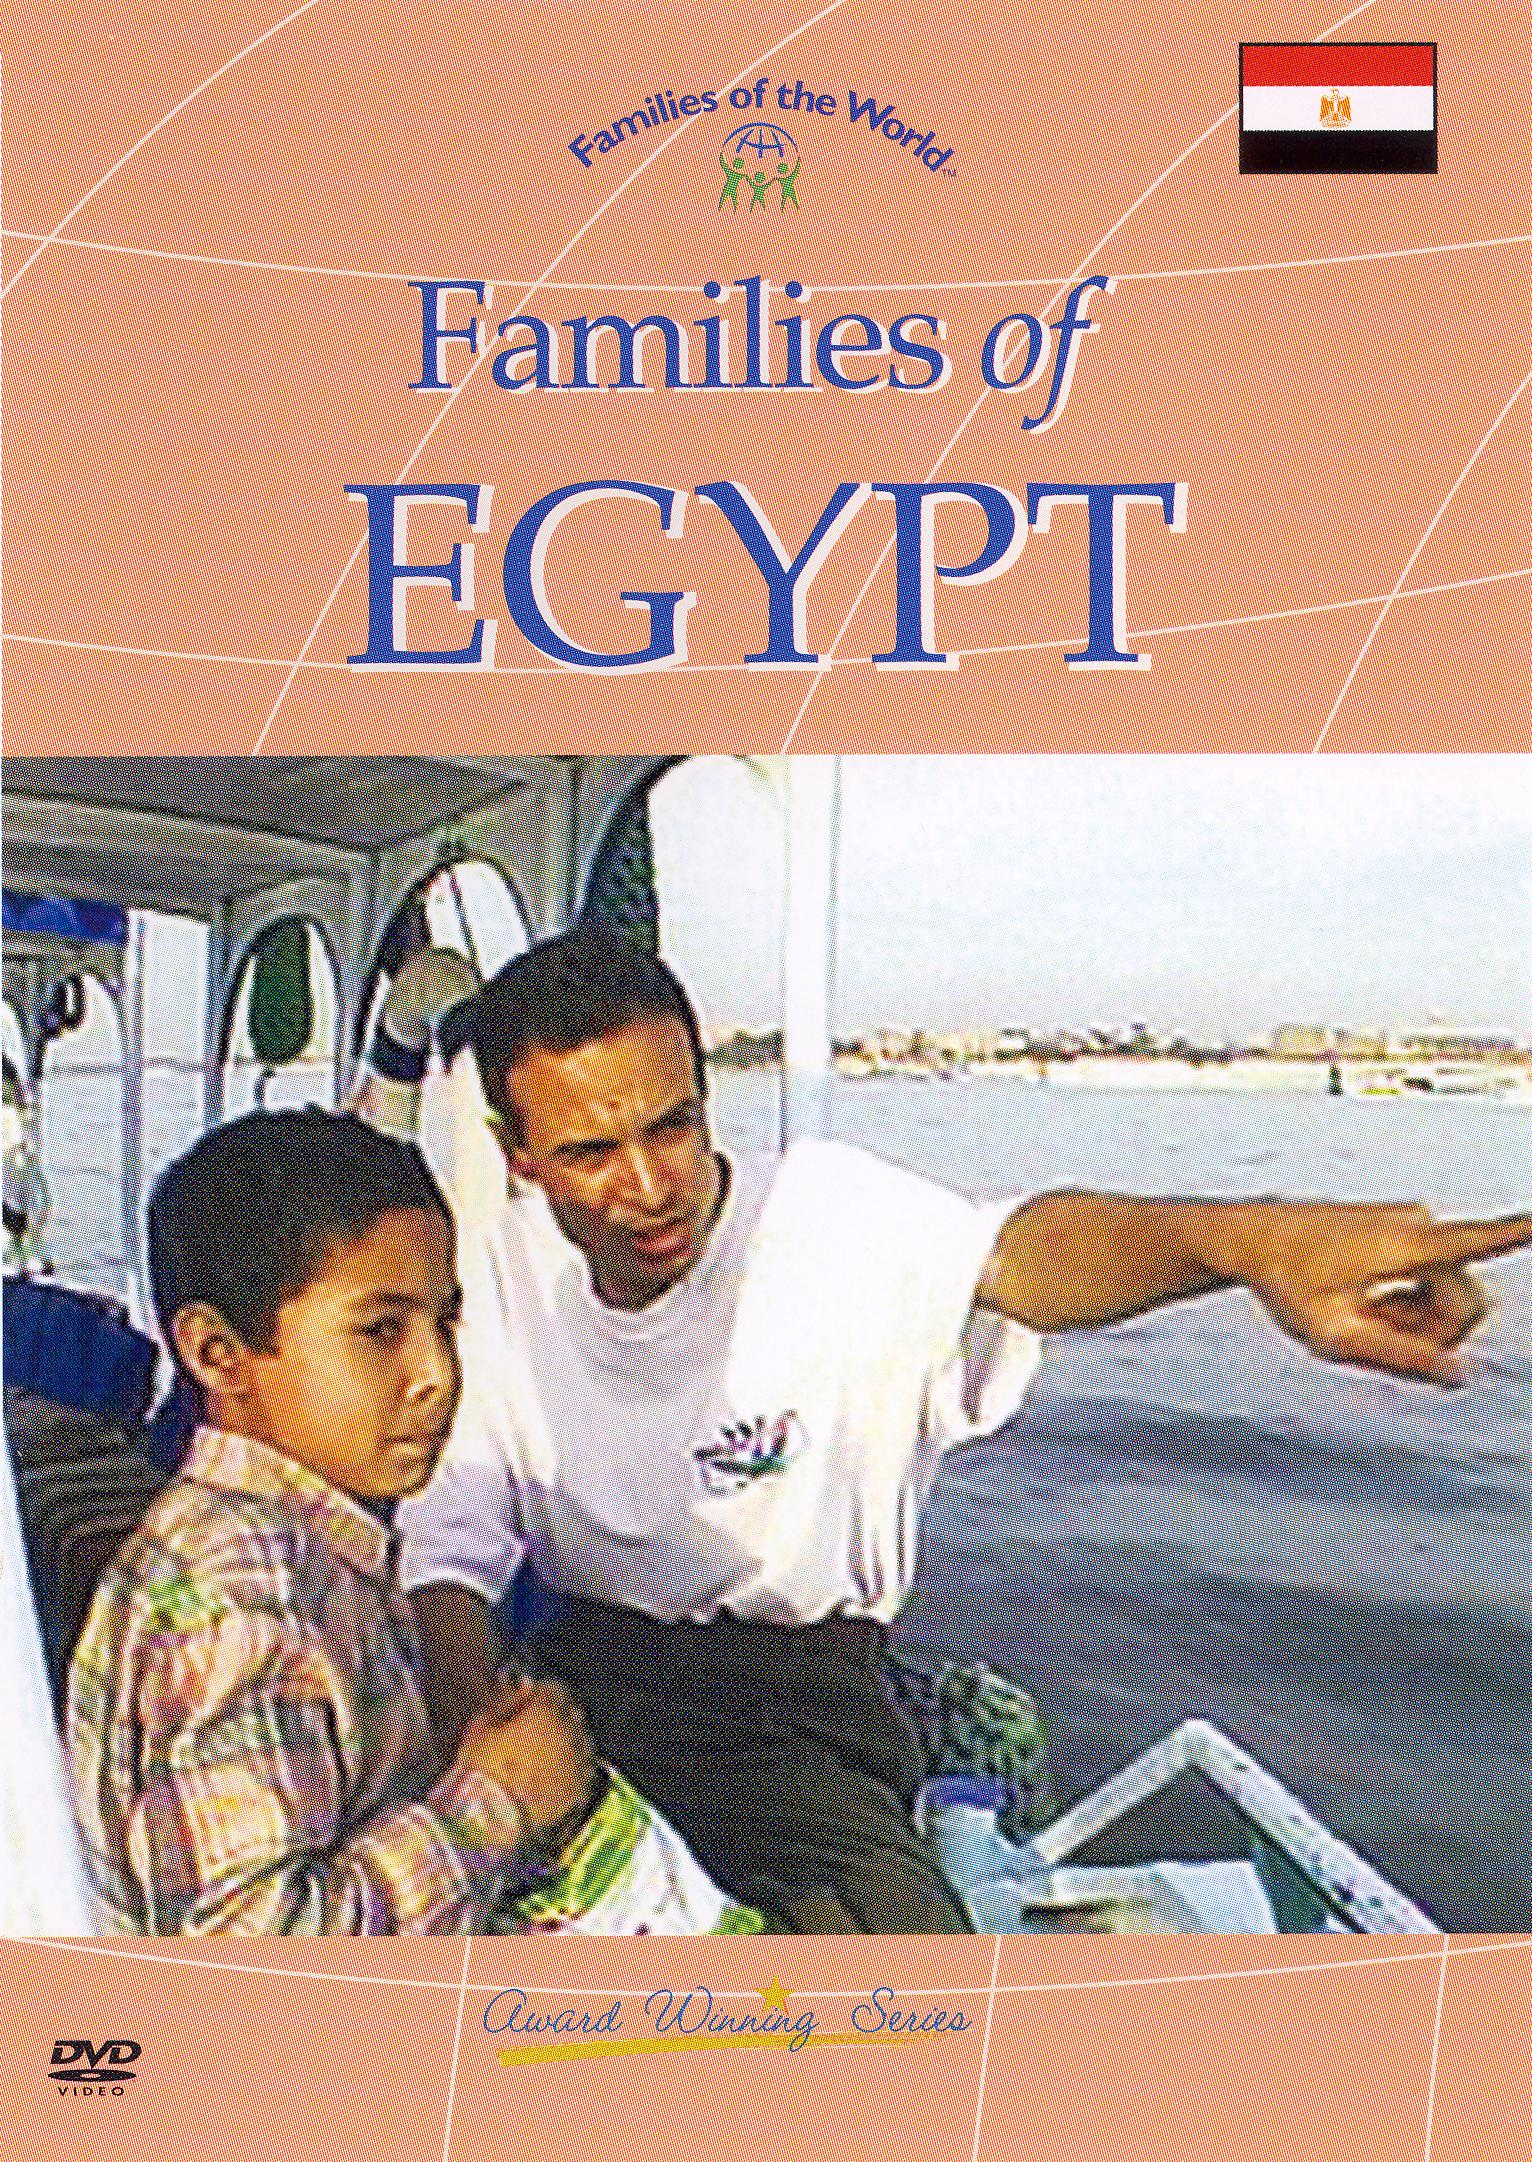 Families of the World: Families of Egypt